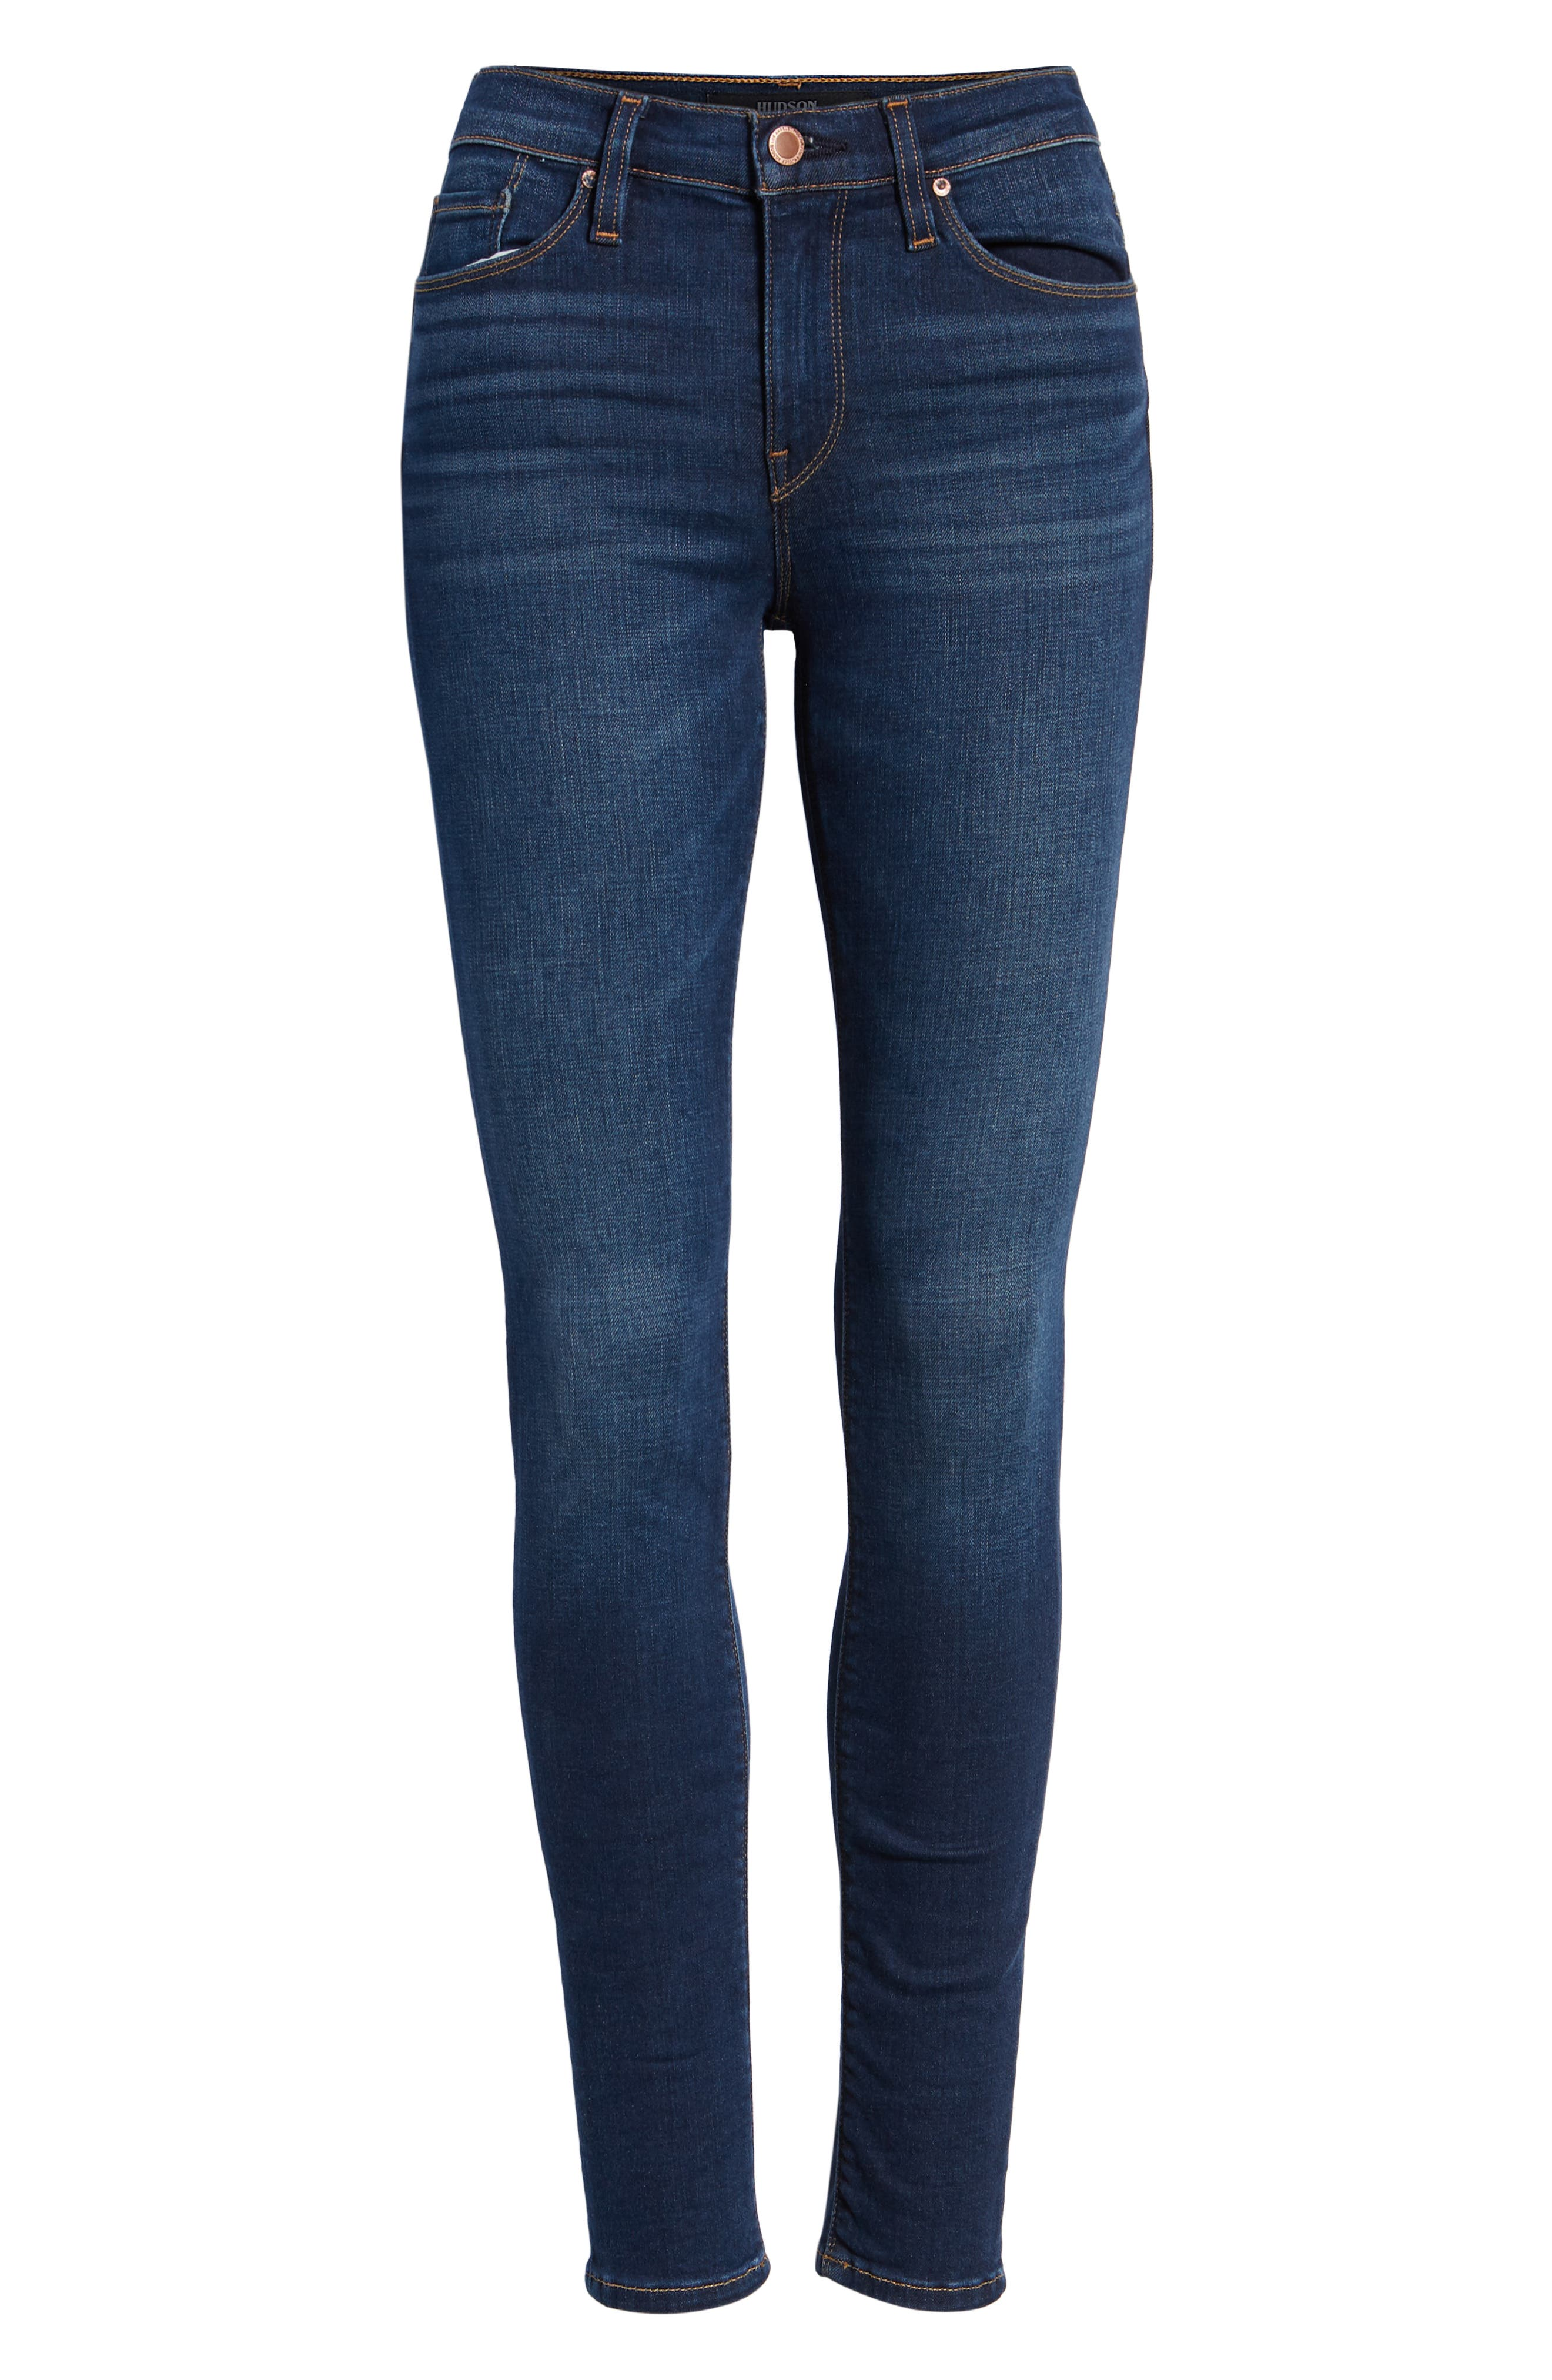 Nico Super Skinny Jeans,                             Alternate thumbnail 7, color,                             GOWER